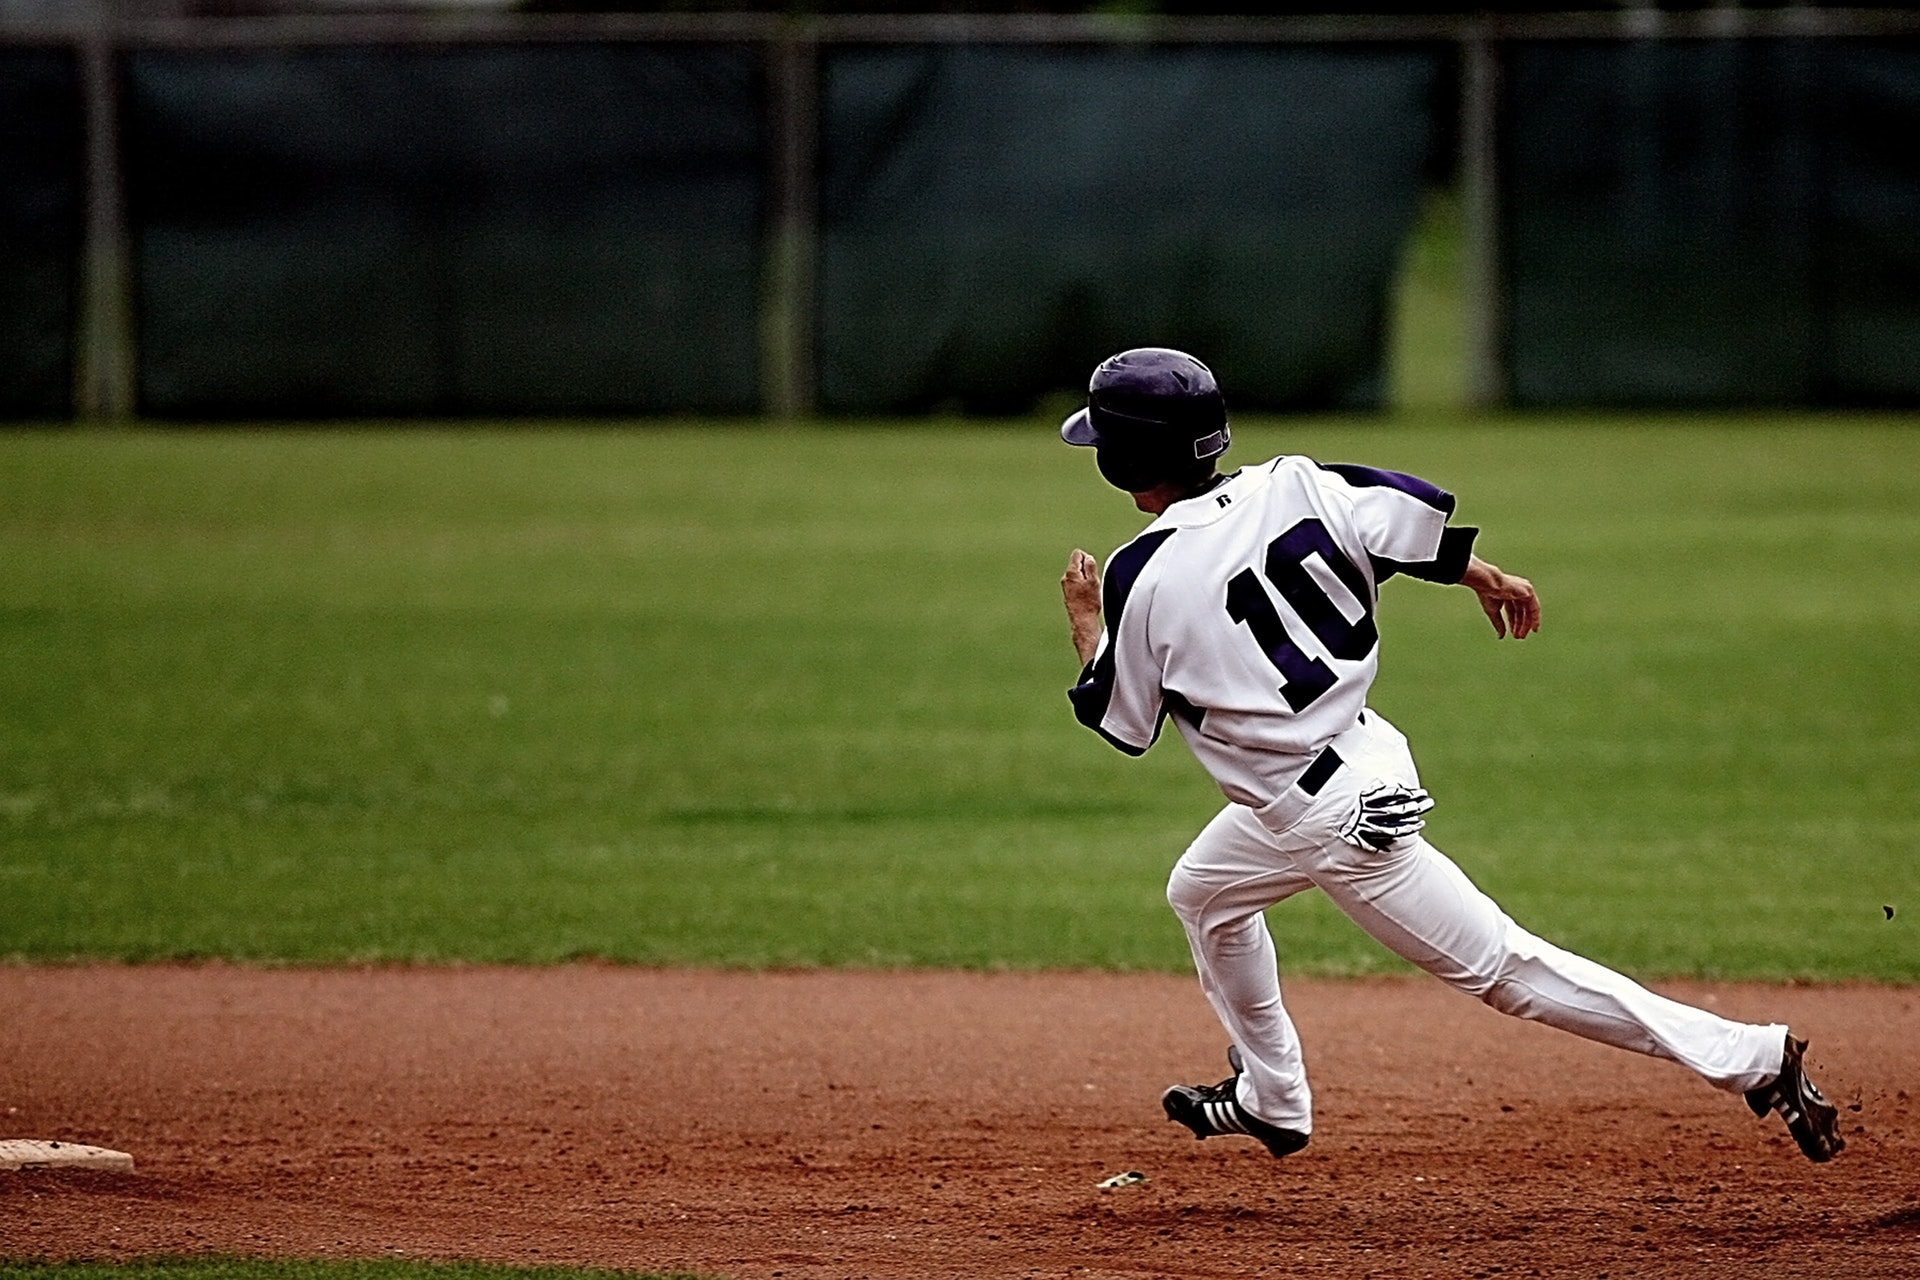 tips on coaching baseball Free baseball instruction, exclusively from the pros pbi is a free resource for serious baseball players - where pro players, coaches, trainers and scouts share their hard-earned knowledge about how to play baseball the right way.